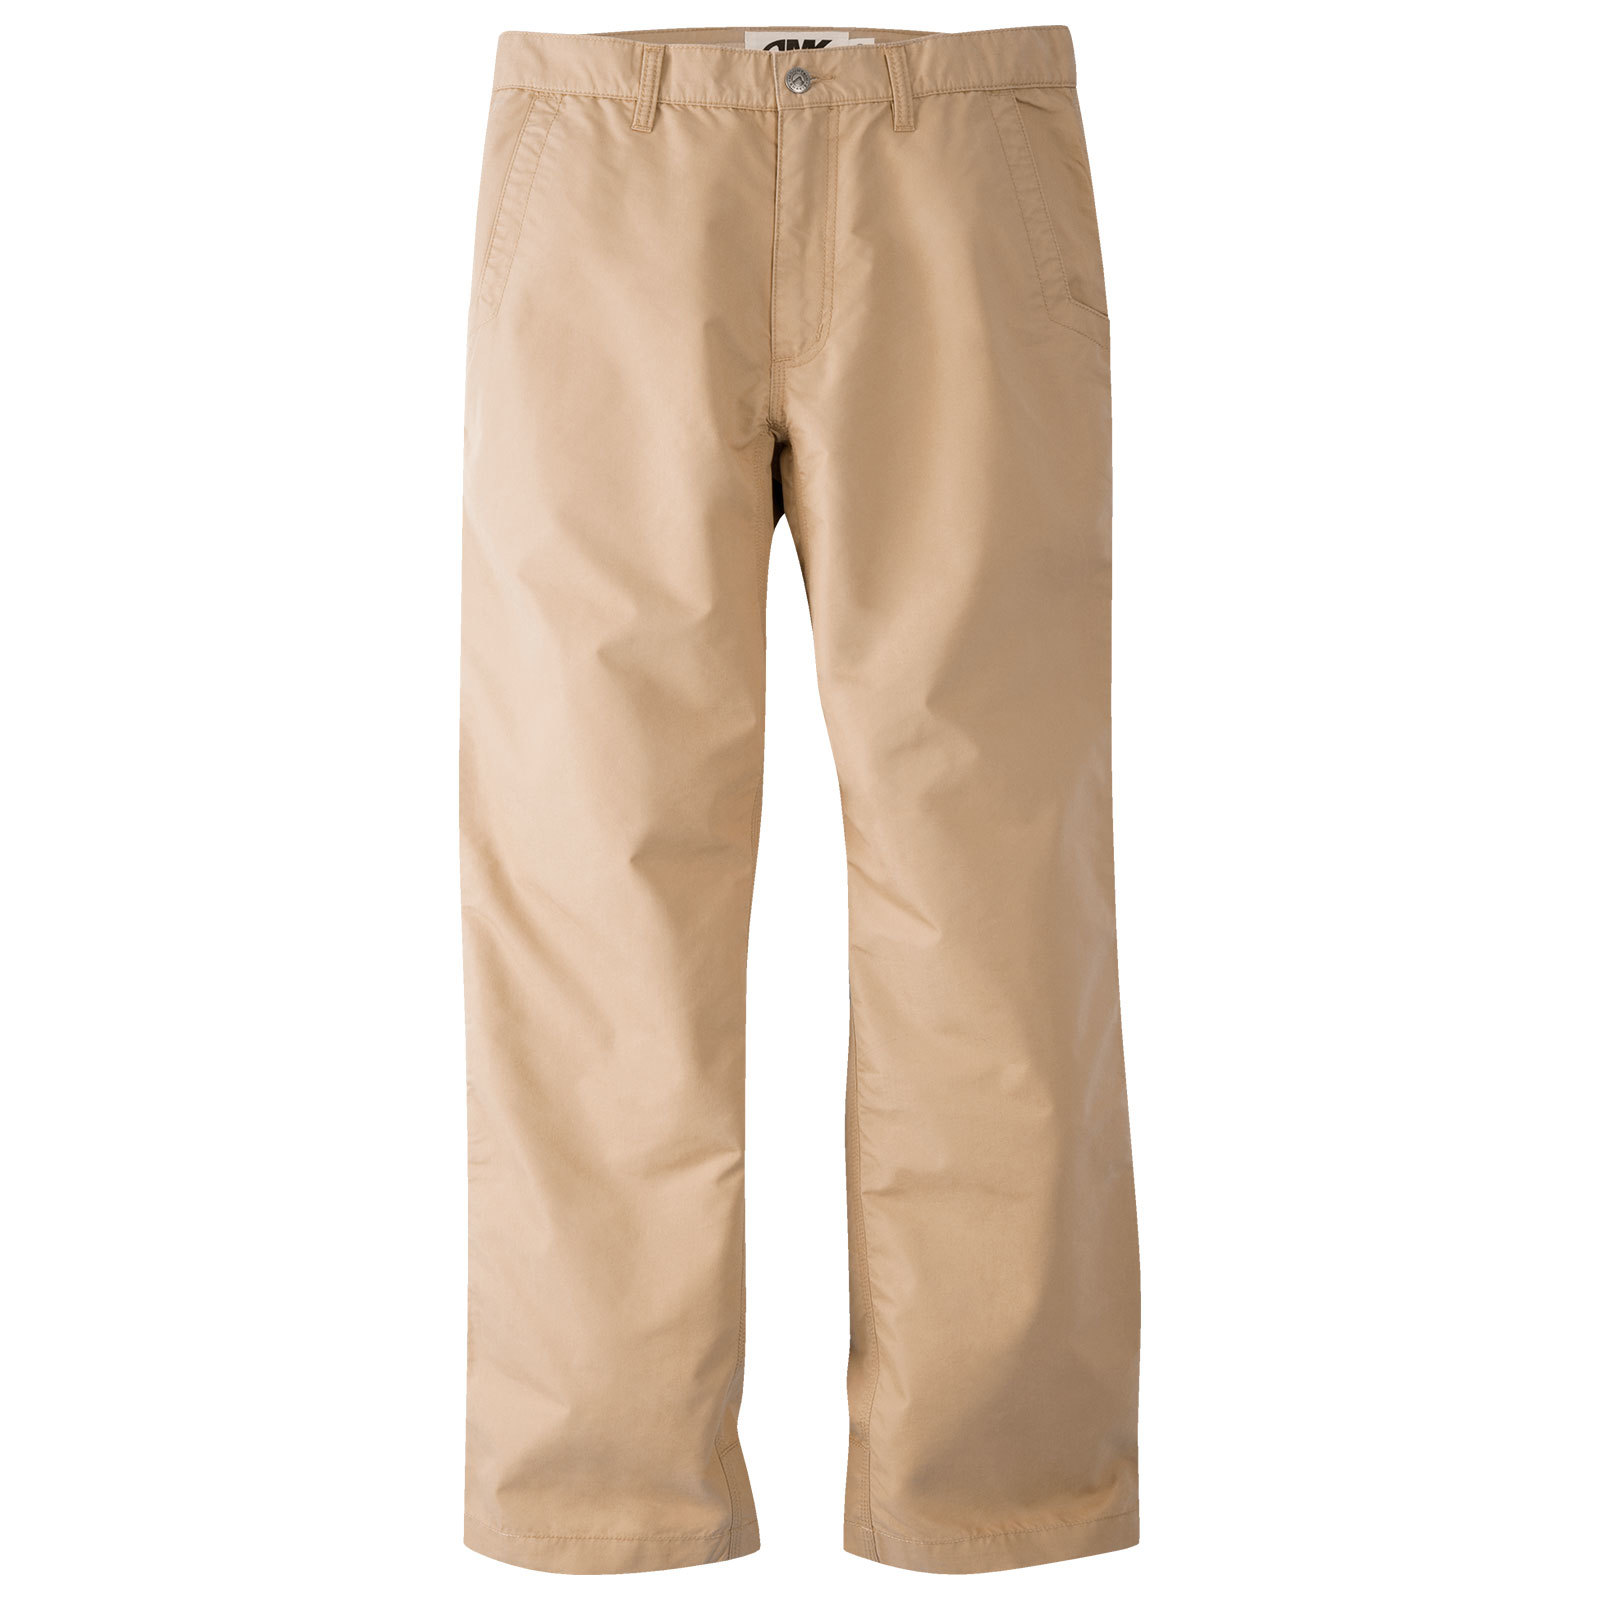 Mountain Khakis | Men's Poplin Pant Slim Fit - Mountain Khakis